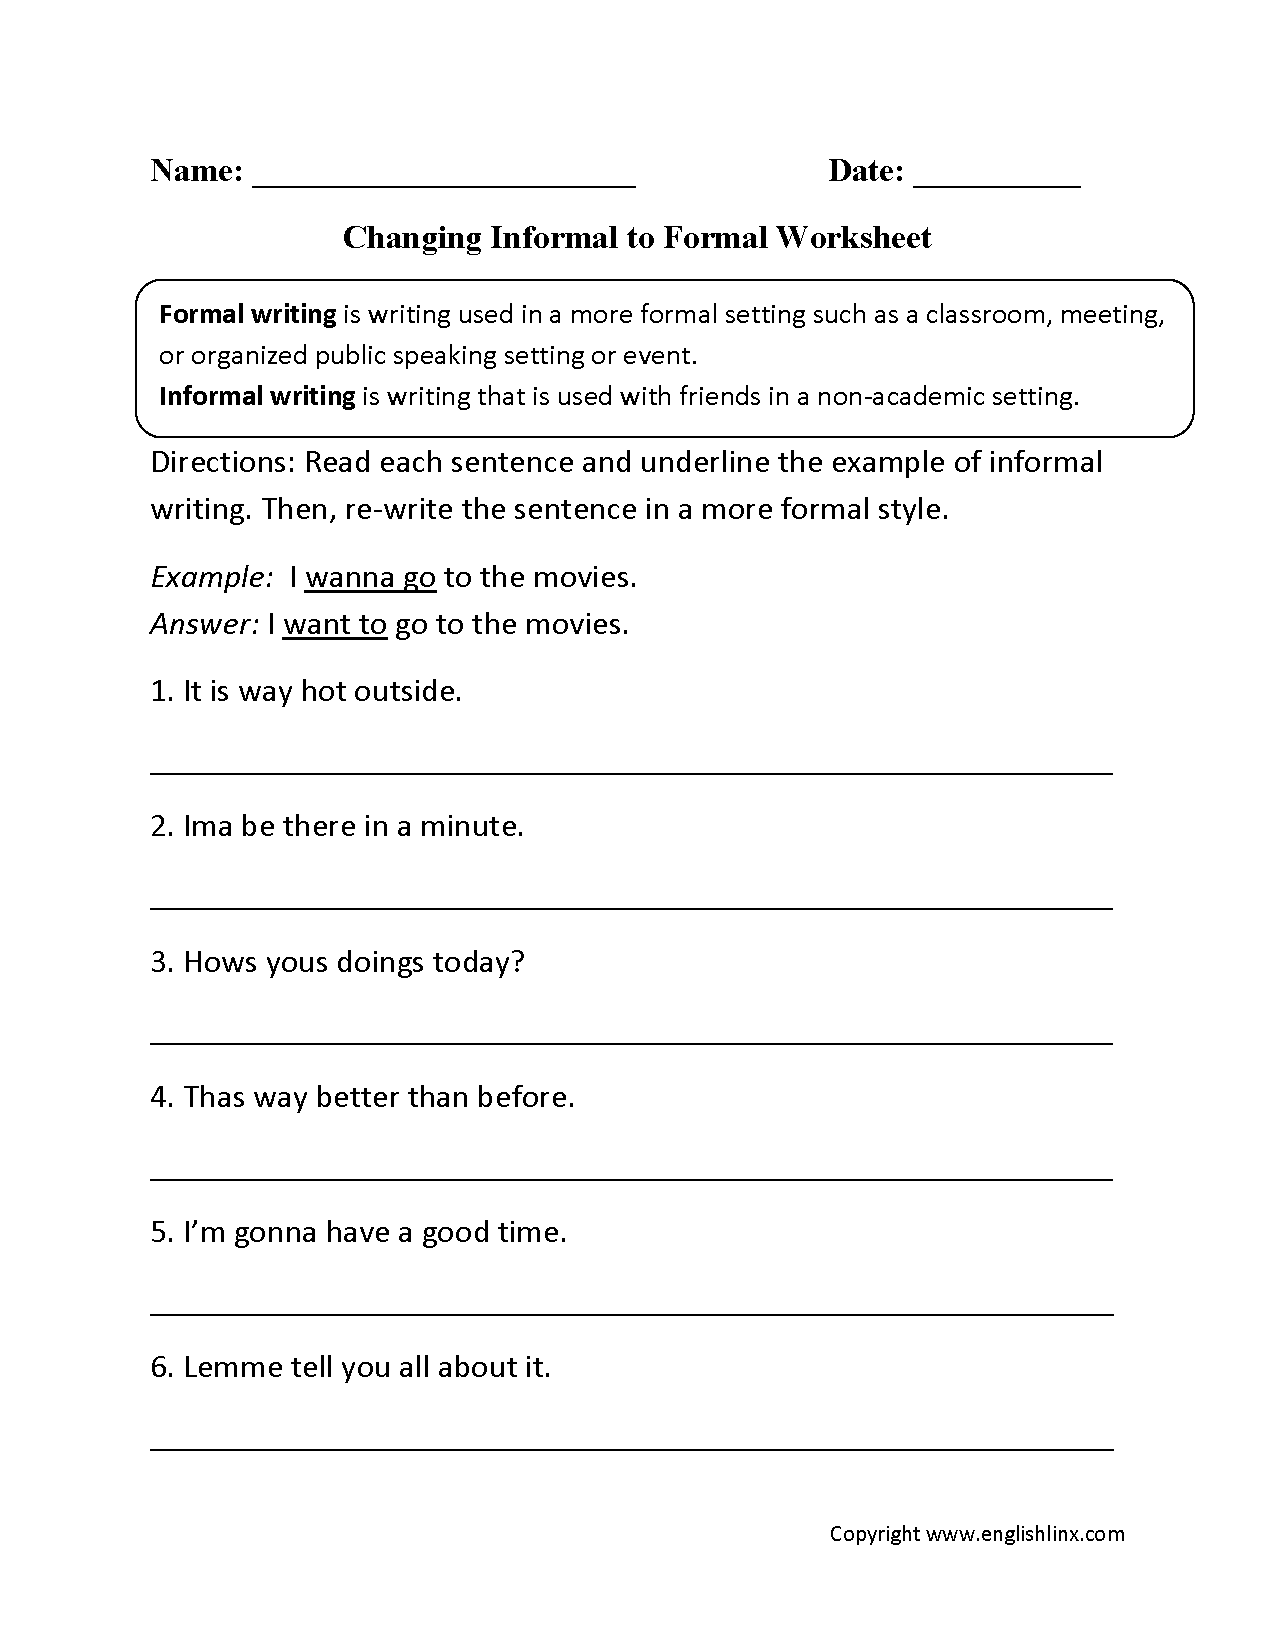 Changing Informal To Formal Worksheet